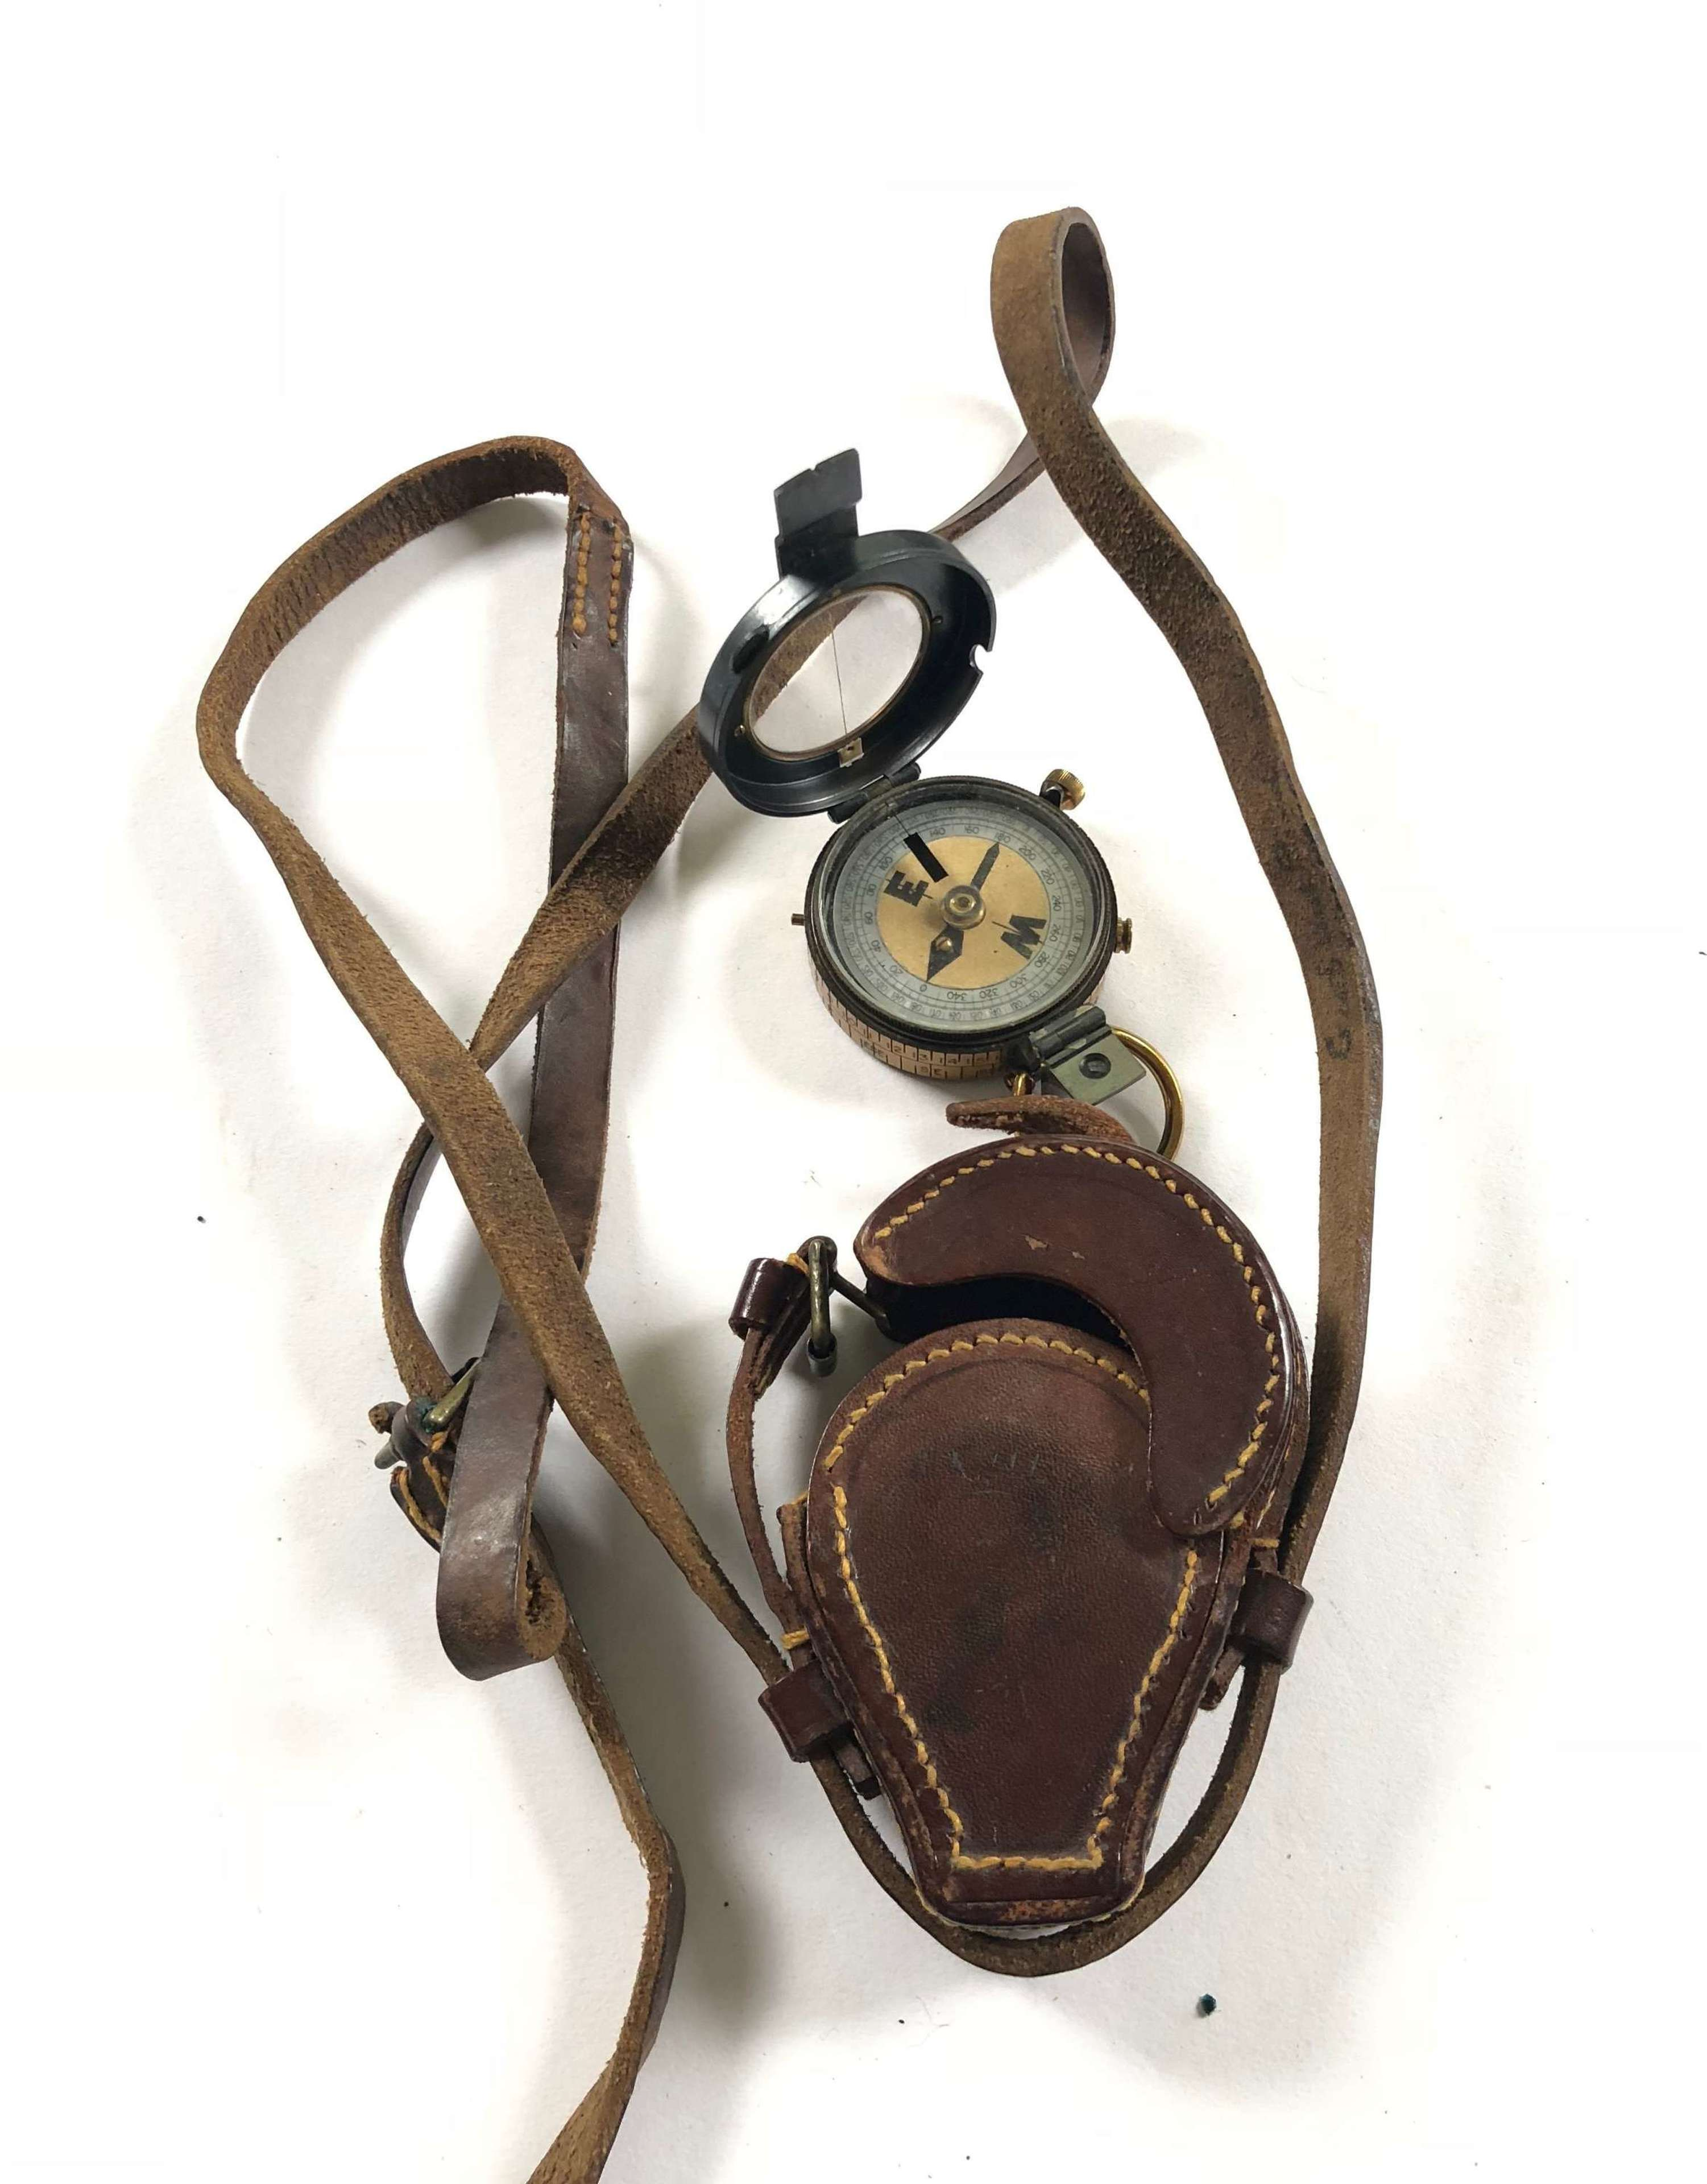 WW1 K.O.Y.L.I Attributed Casualty Officers Marching Field Compass.